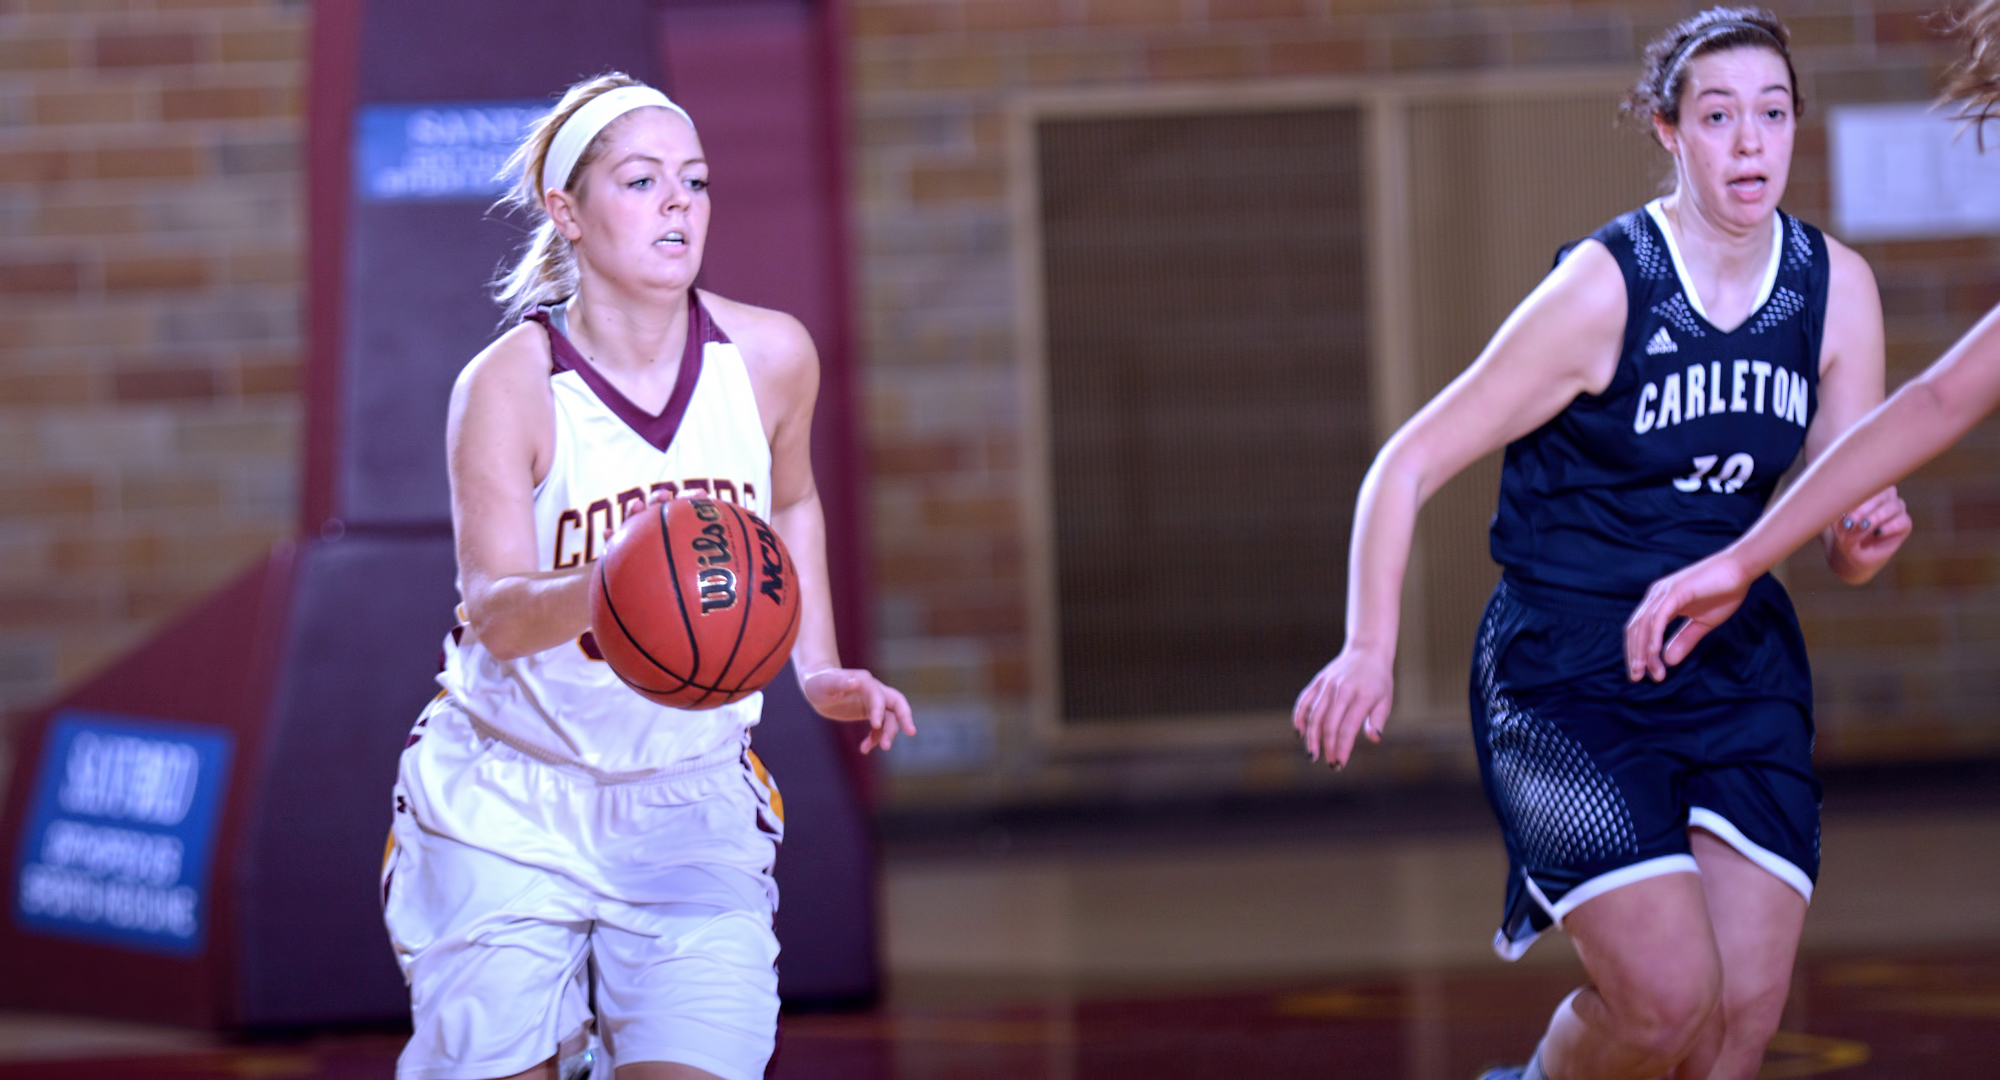 Junior Grace Wolhowe scored a career-high 24 points in the Cobbers' win at Carleton.